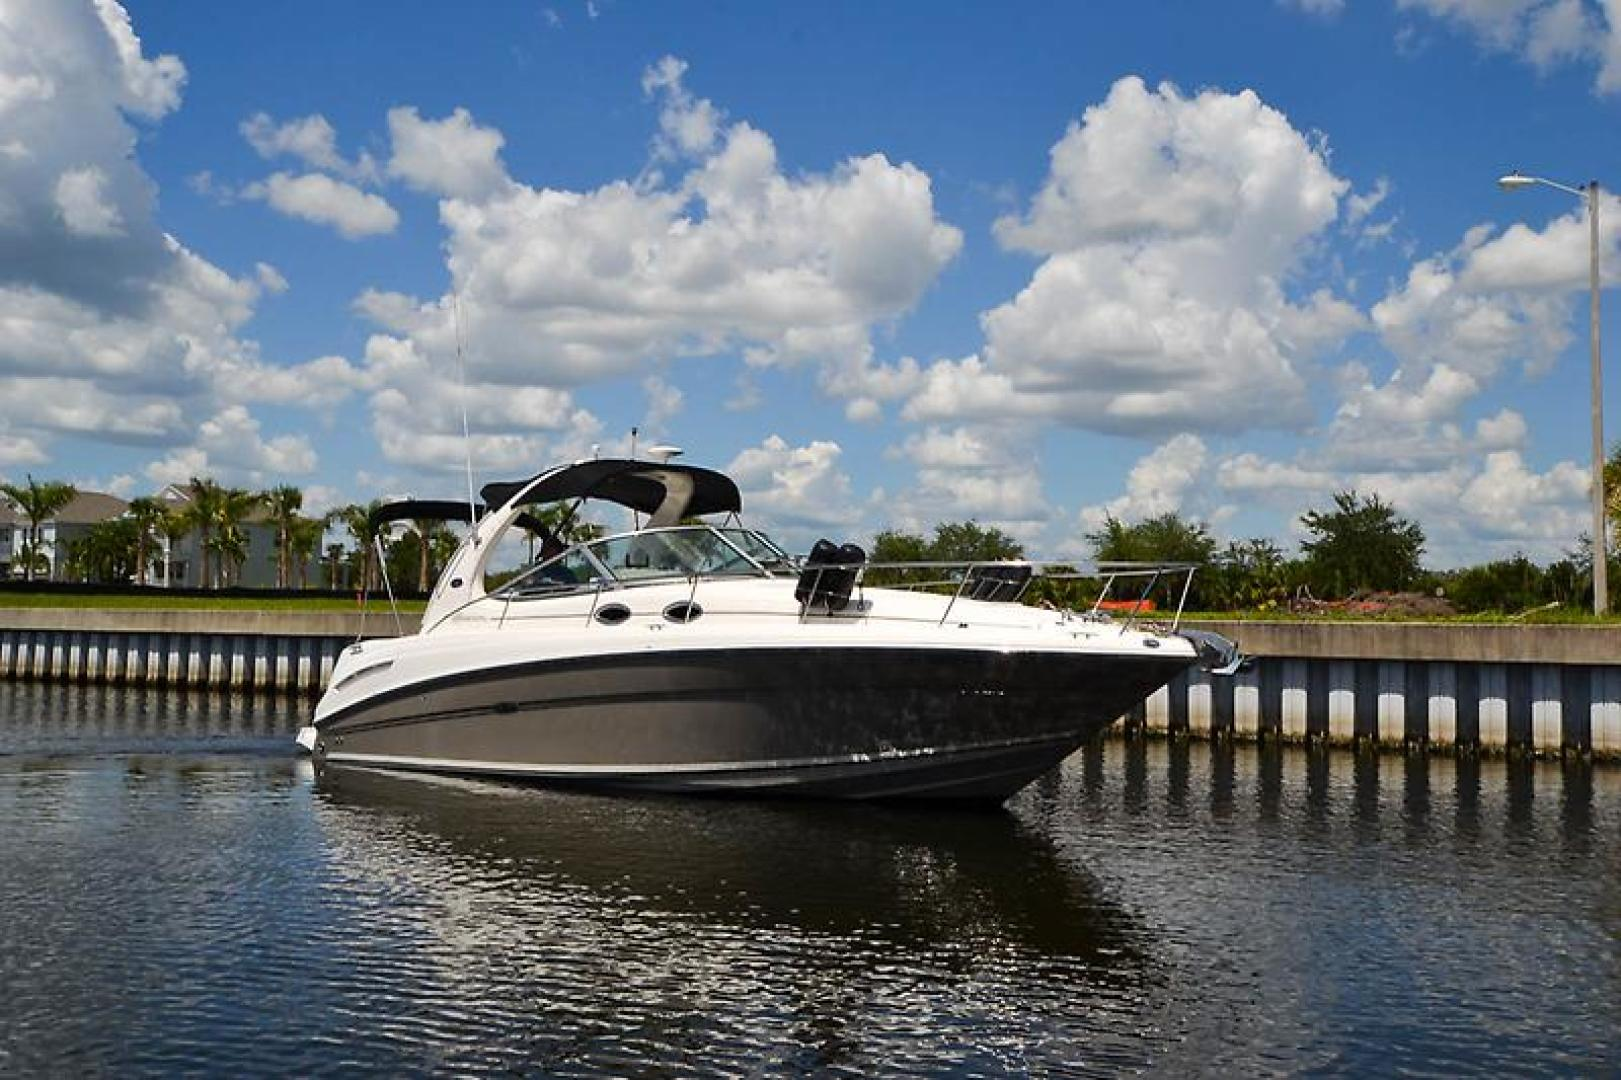 2006 Sea Ray 300 Sundancer-17-2.jpg